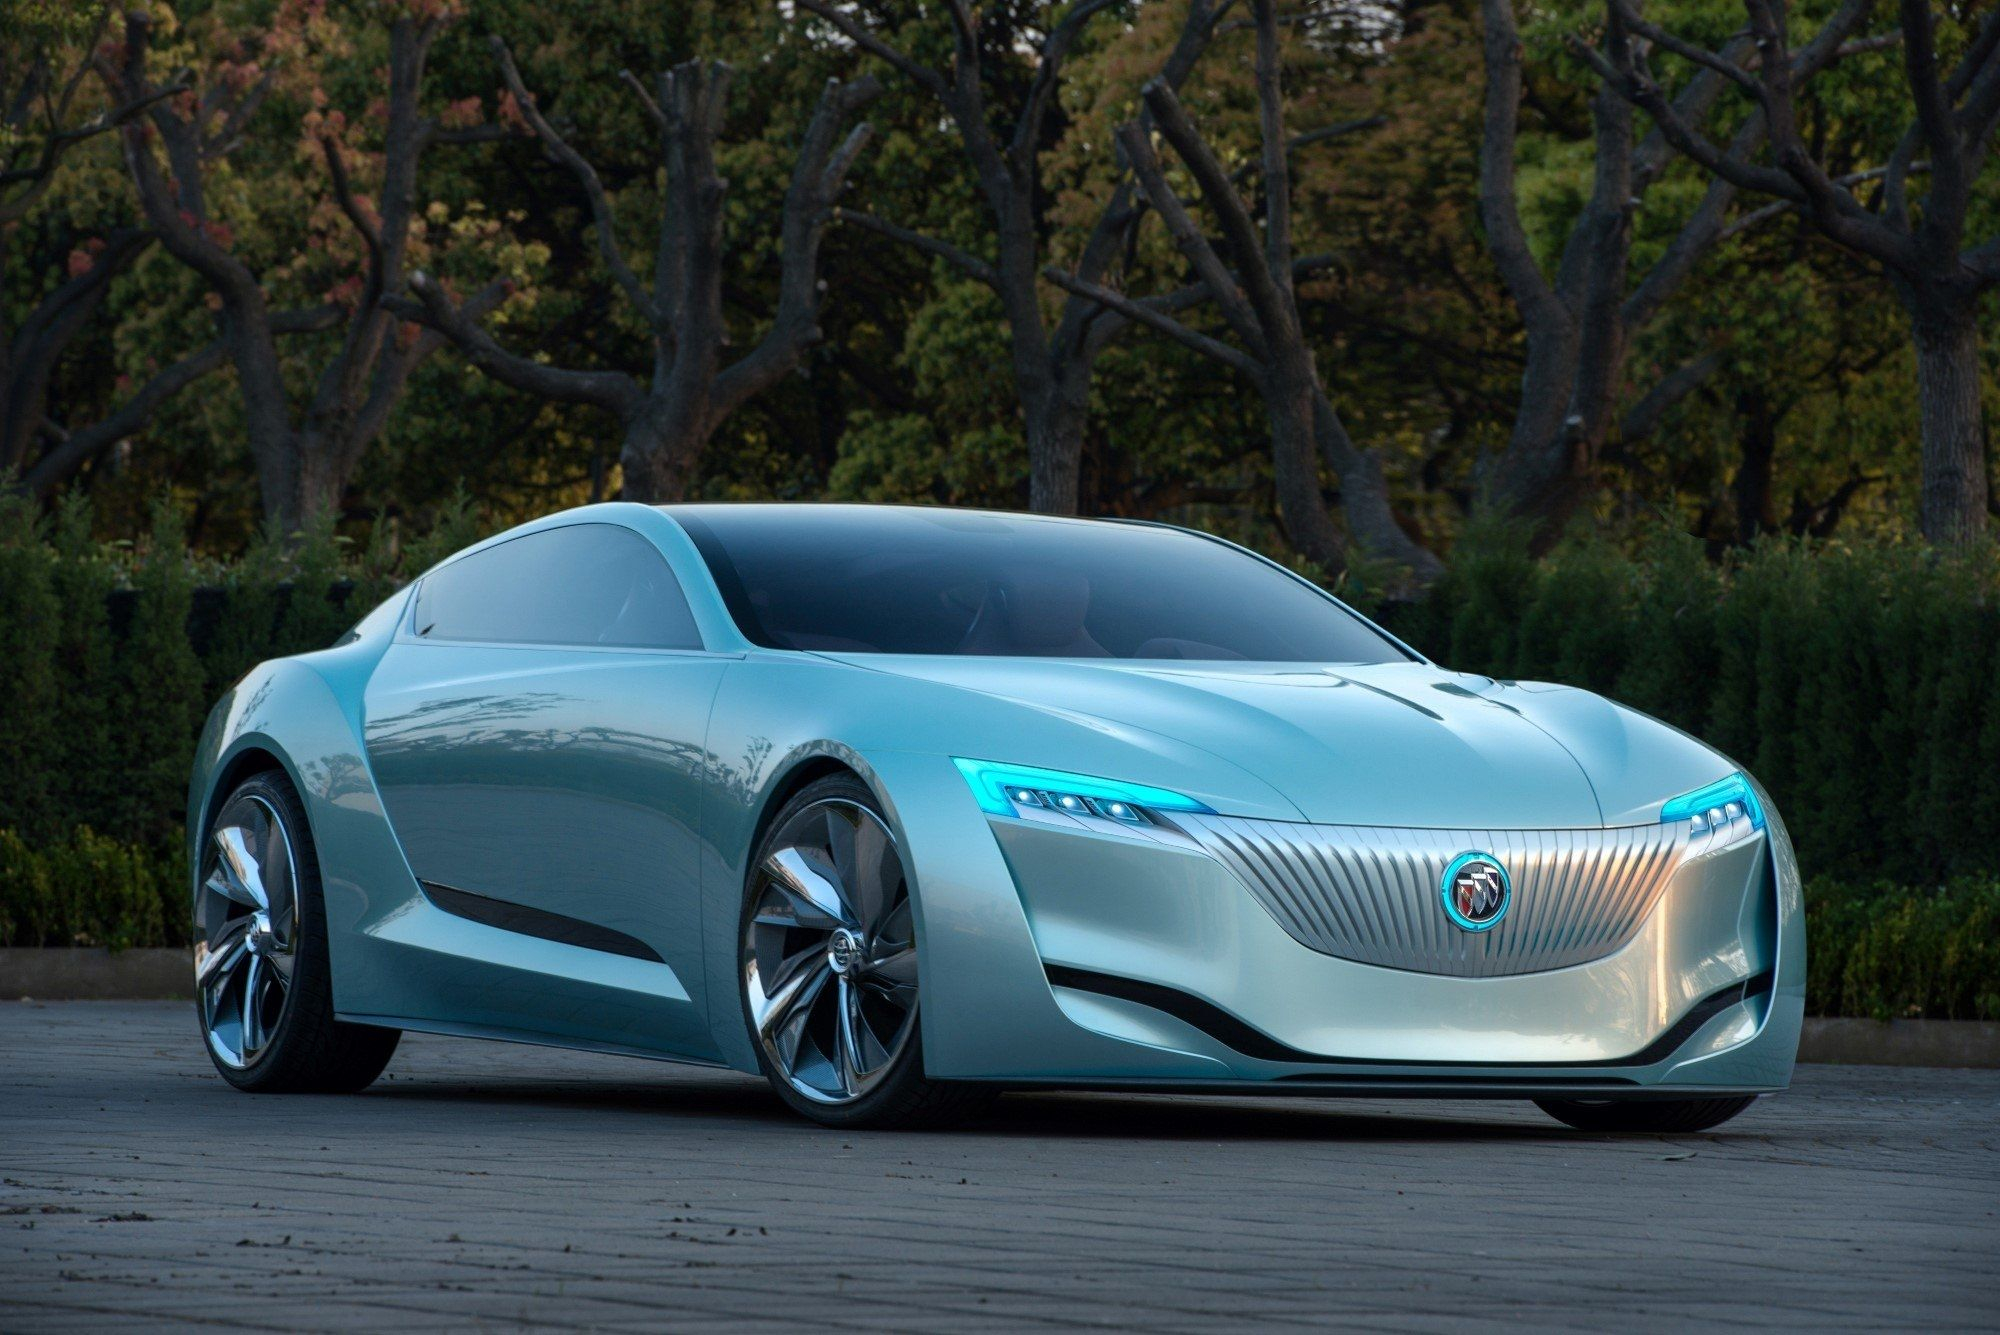 The 2020 Buick Riviera History | Buick Riviera, Concept Cars New 2021 Buick Riviera Interior, Concept, Headlights